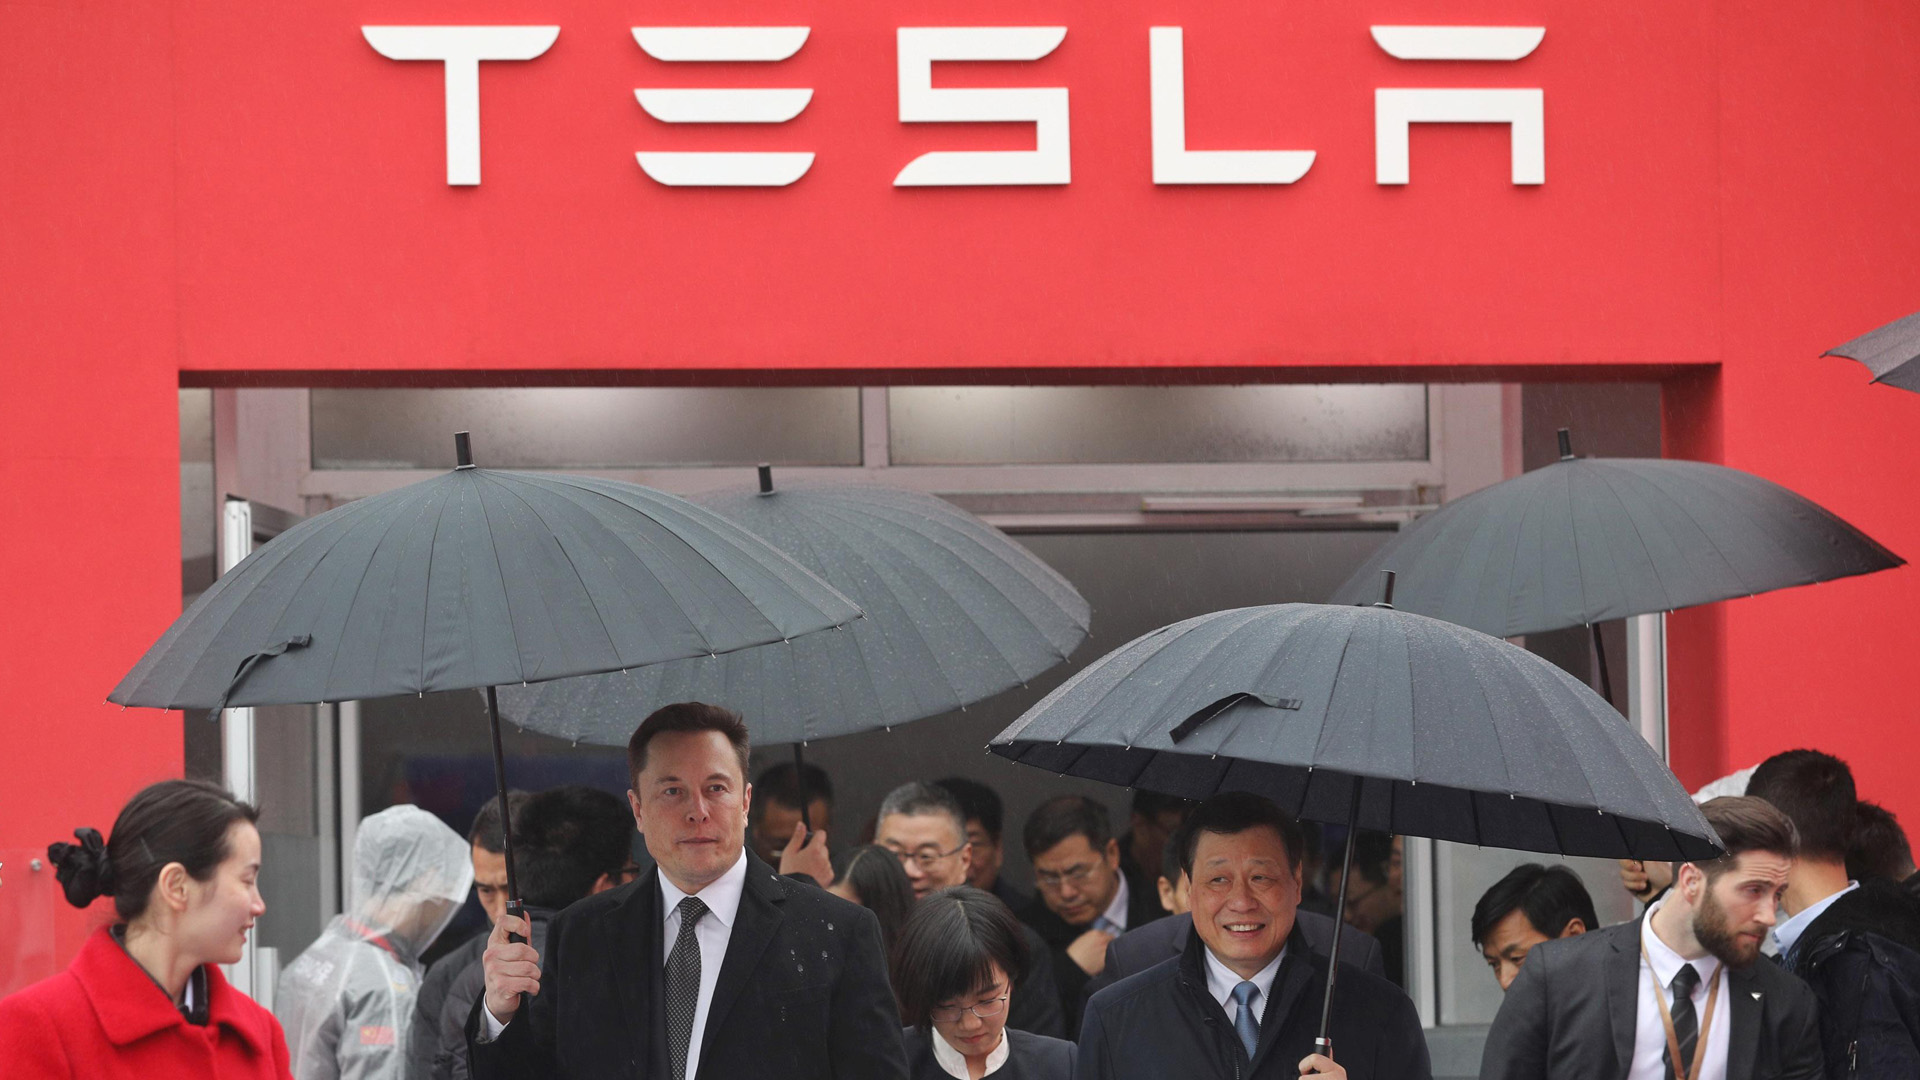 Tesla boss Elon Musk (L) walks with Shanghai Mayor Ying Yong during the ground-breaking ceremony for a Tesla factory in Shanghai on January 7, 2019. (Credit: STR/AFP/Getty Images)